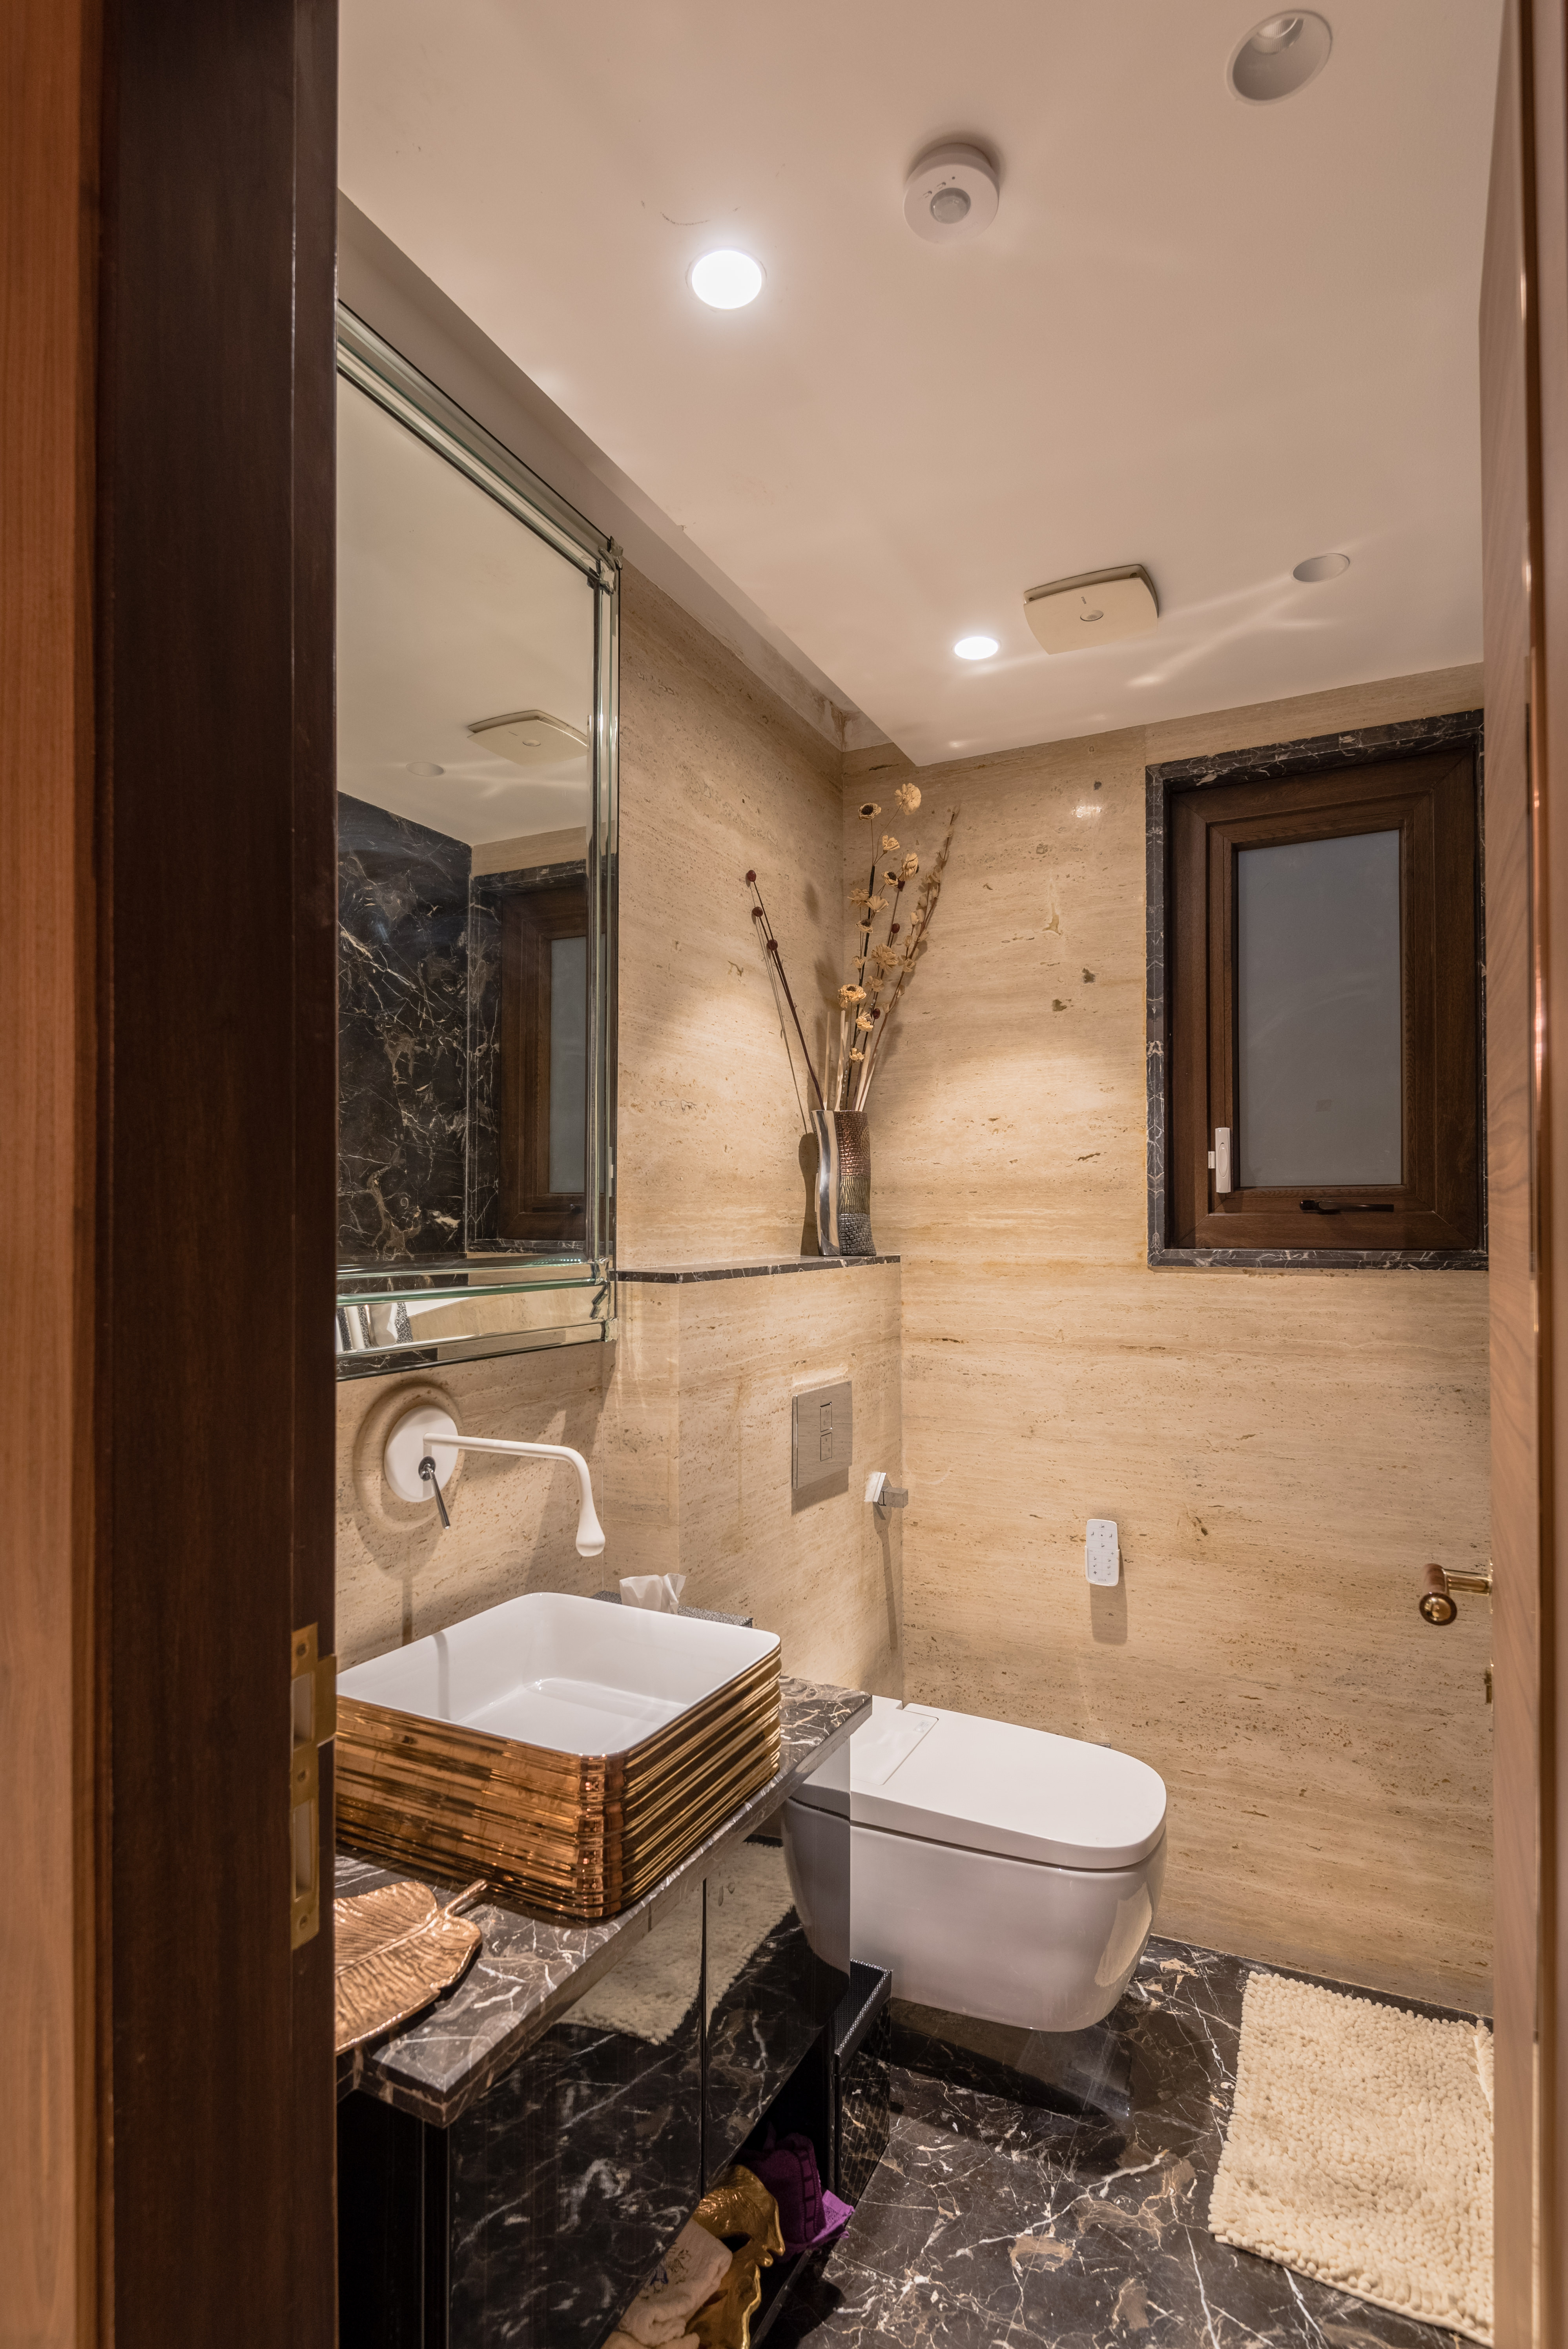 Decorating A Small Bathroom On A Budget Lovely Bathroom Design Experts Revel Ways to Design This Space On